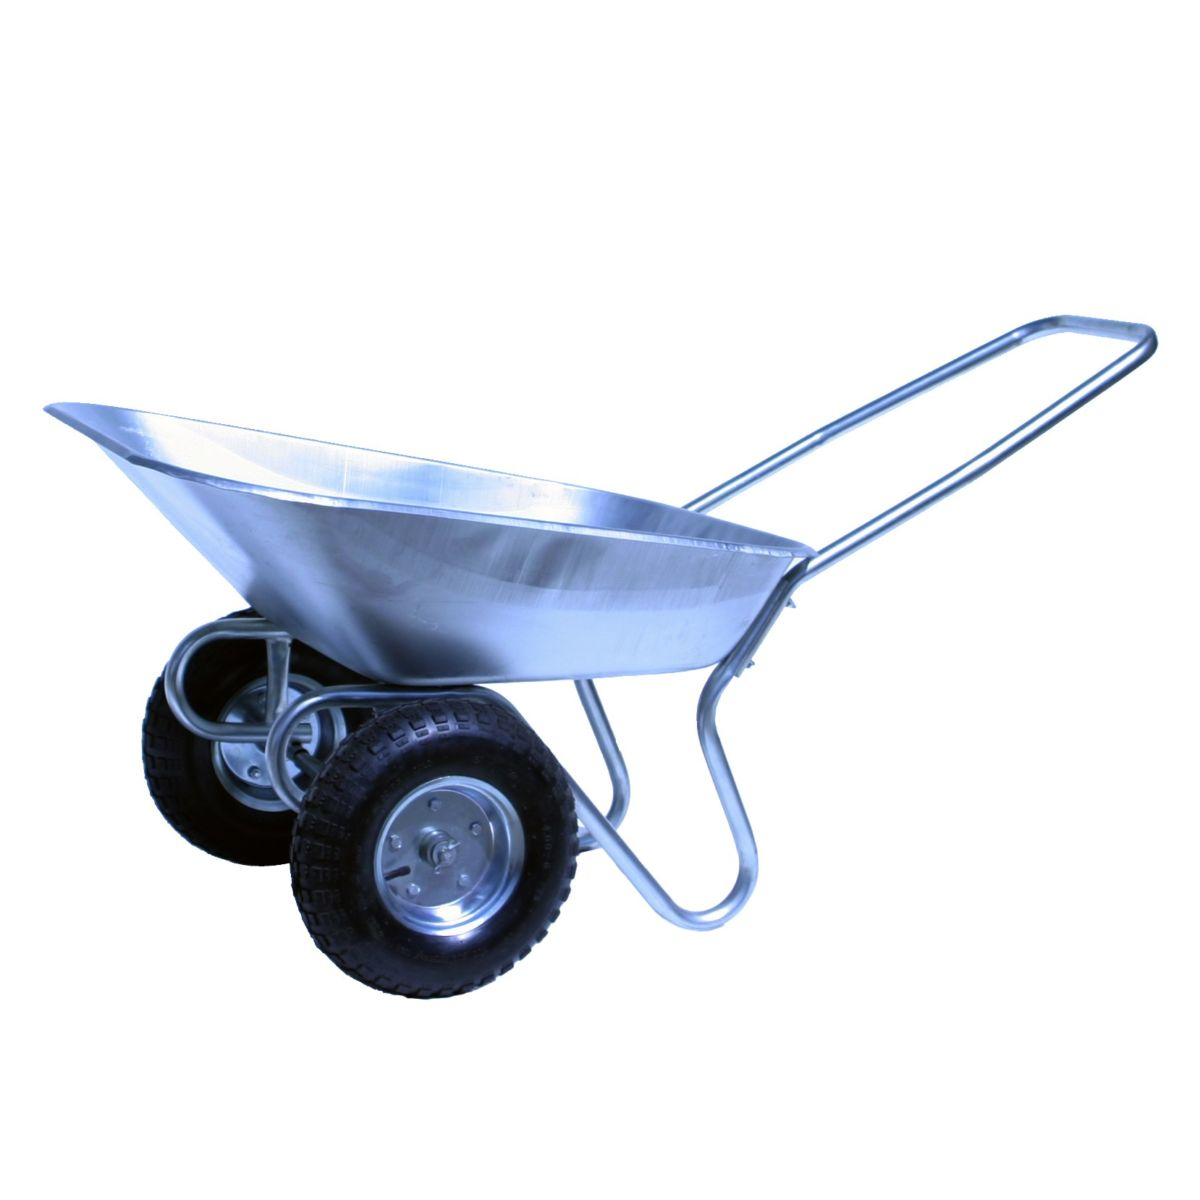 2 wheel wheelbarrow charging agm batteries with solar panels